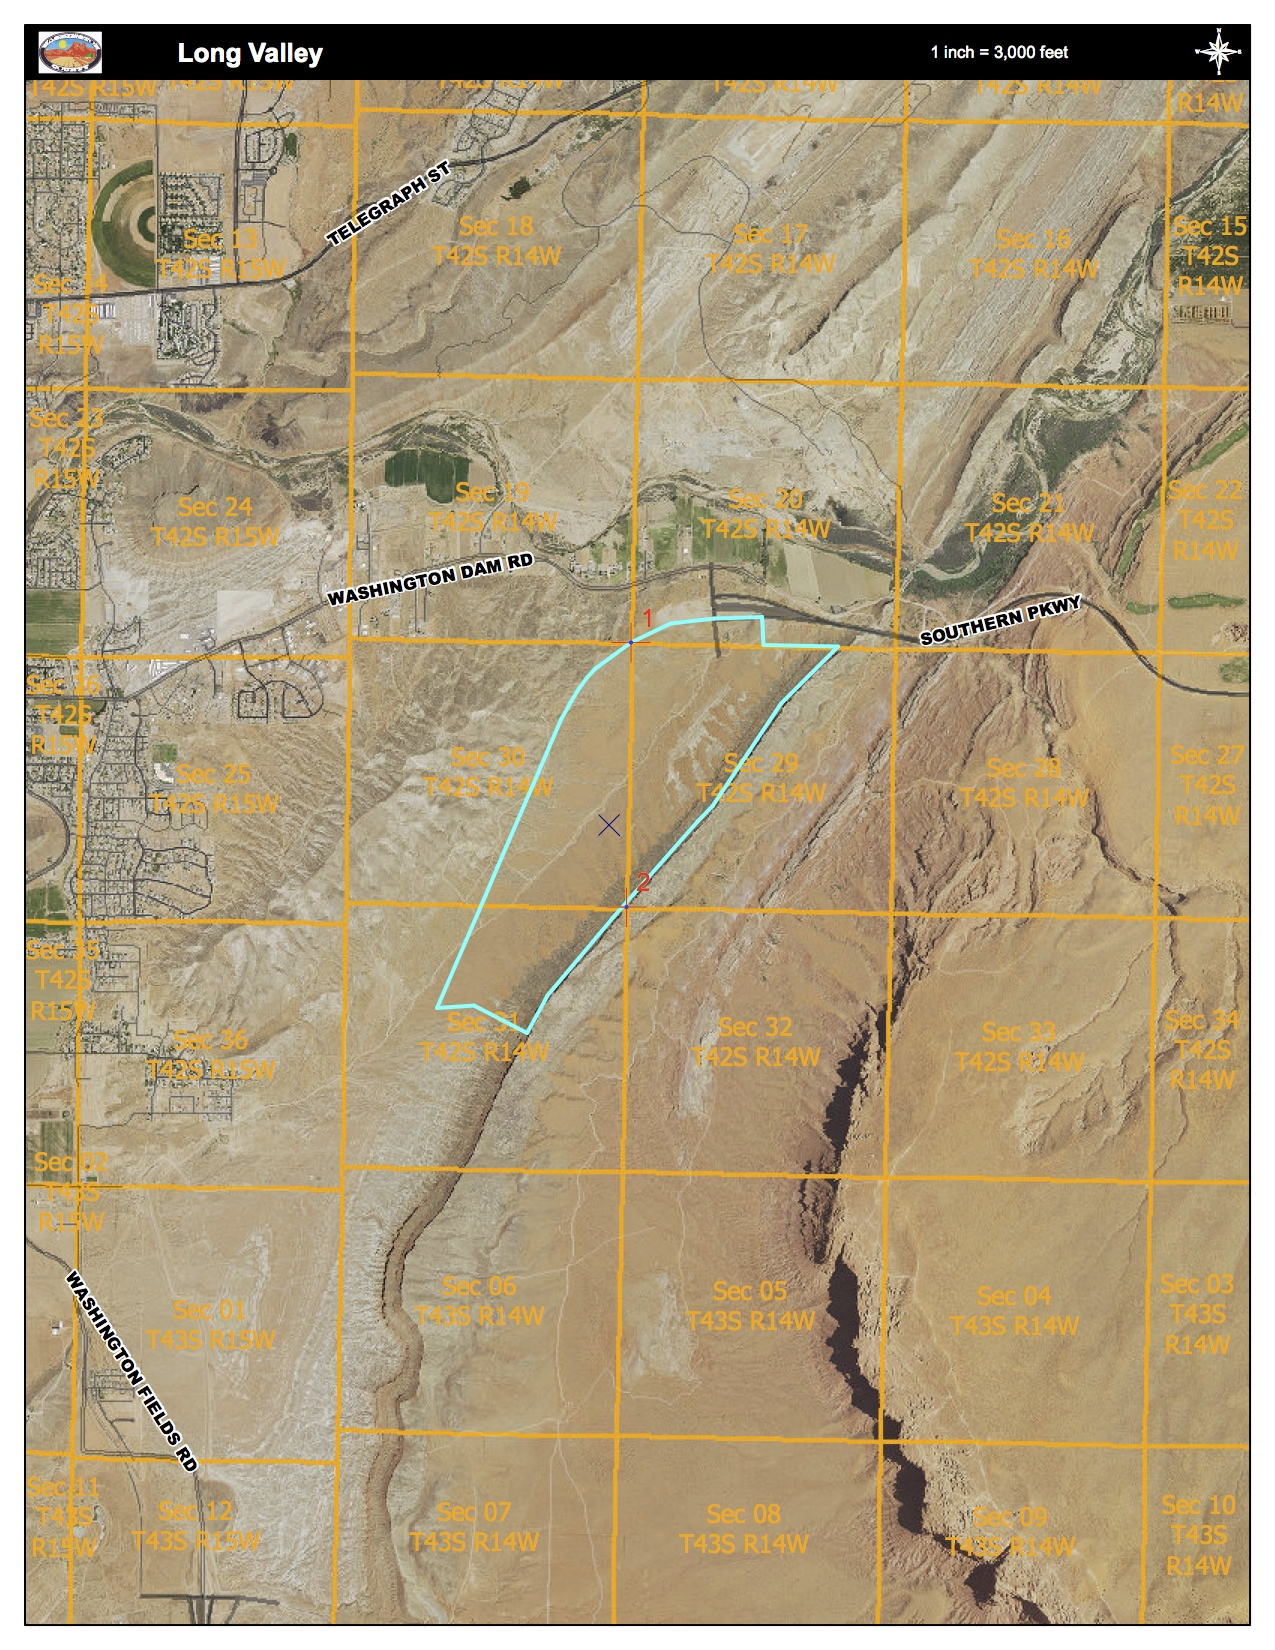 Proposed Long Valley exchange parcel | Image courtesy Washington County Geographical Information Systems, St. George News